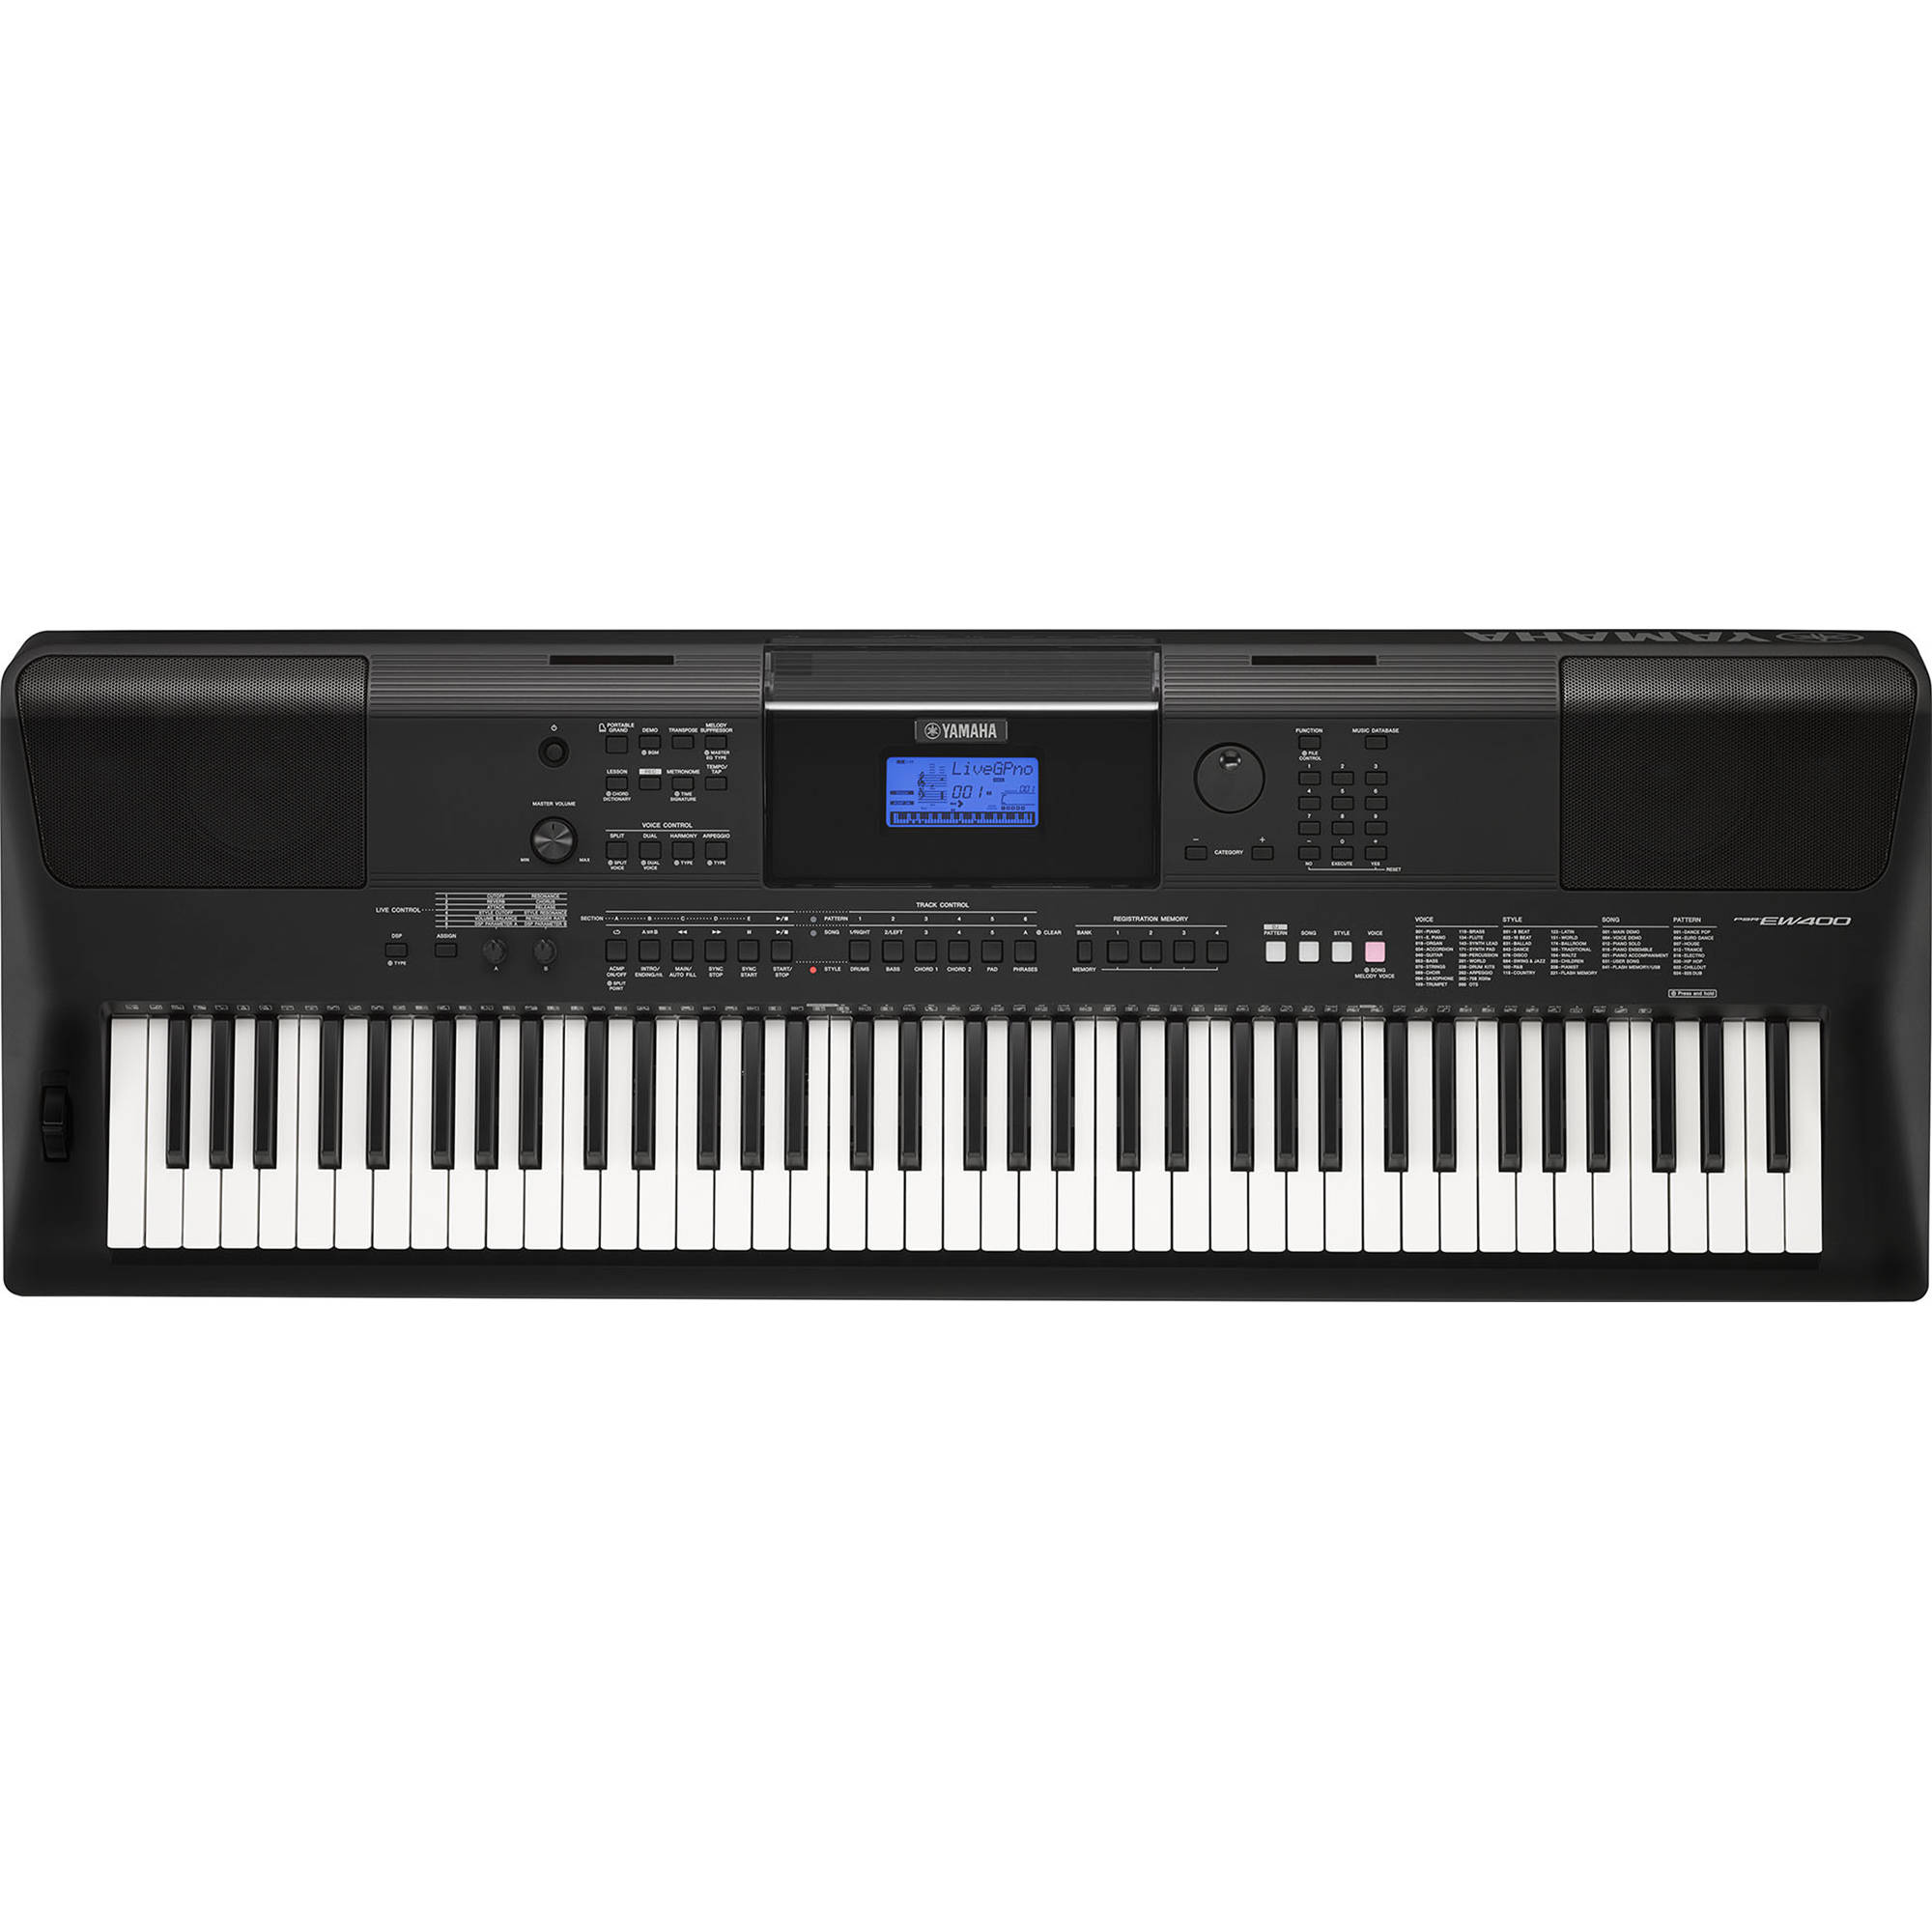 yamaha psr ew400 portable keyboard psrew400 b h photo video. Black Bedroom Furniture Sets. Home Design Ideas